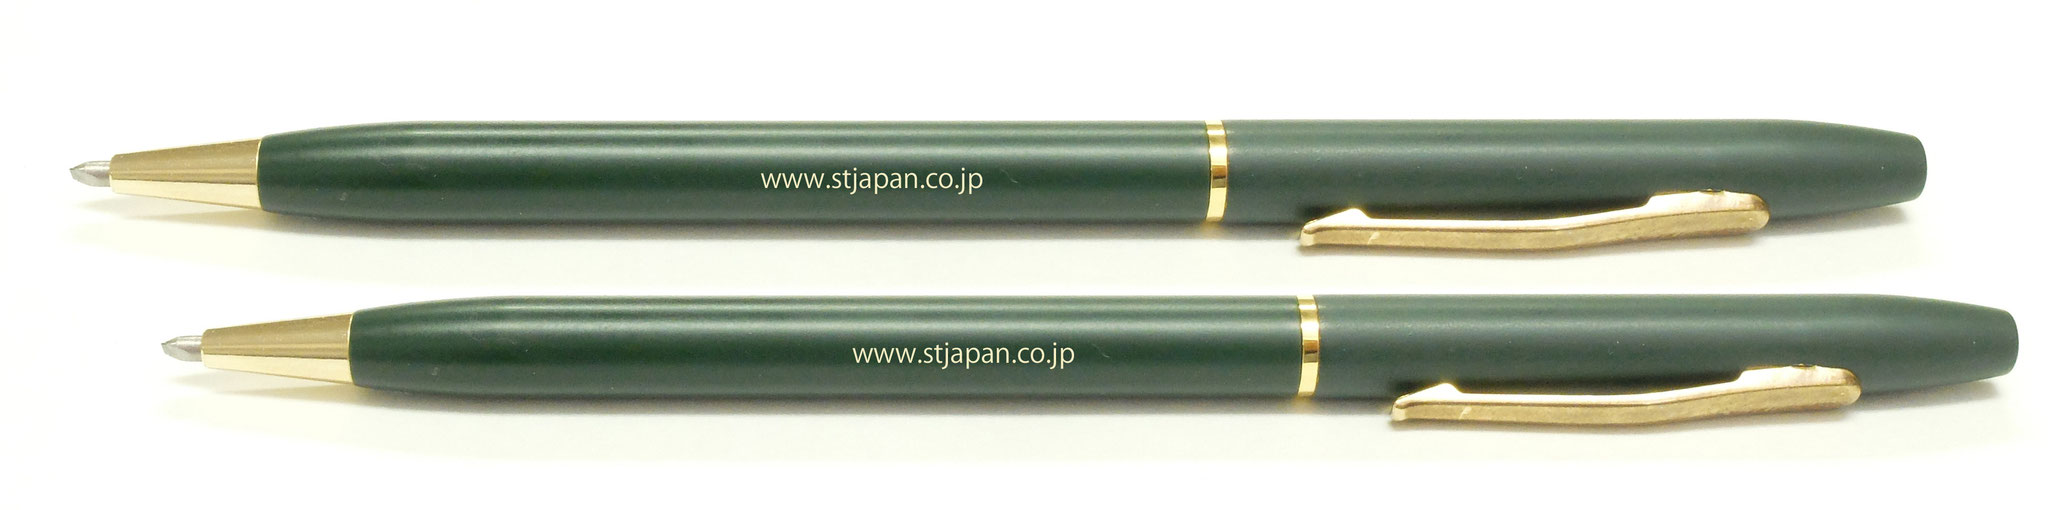 Diamond Pen Cutter - both models